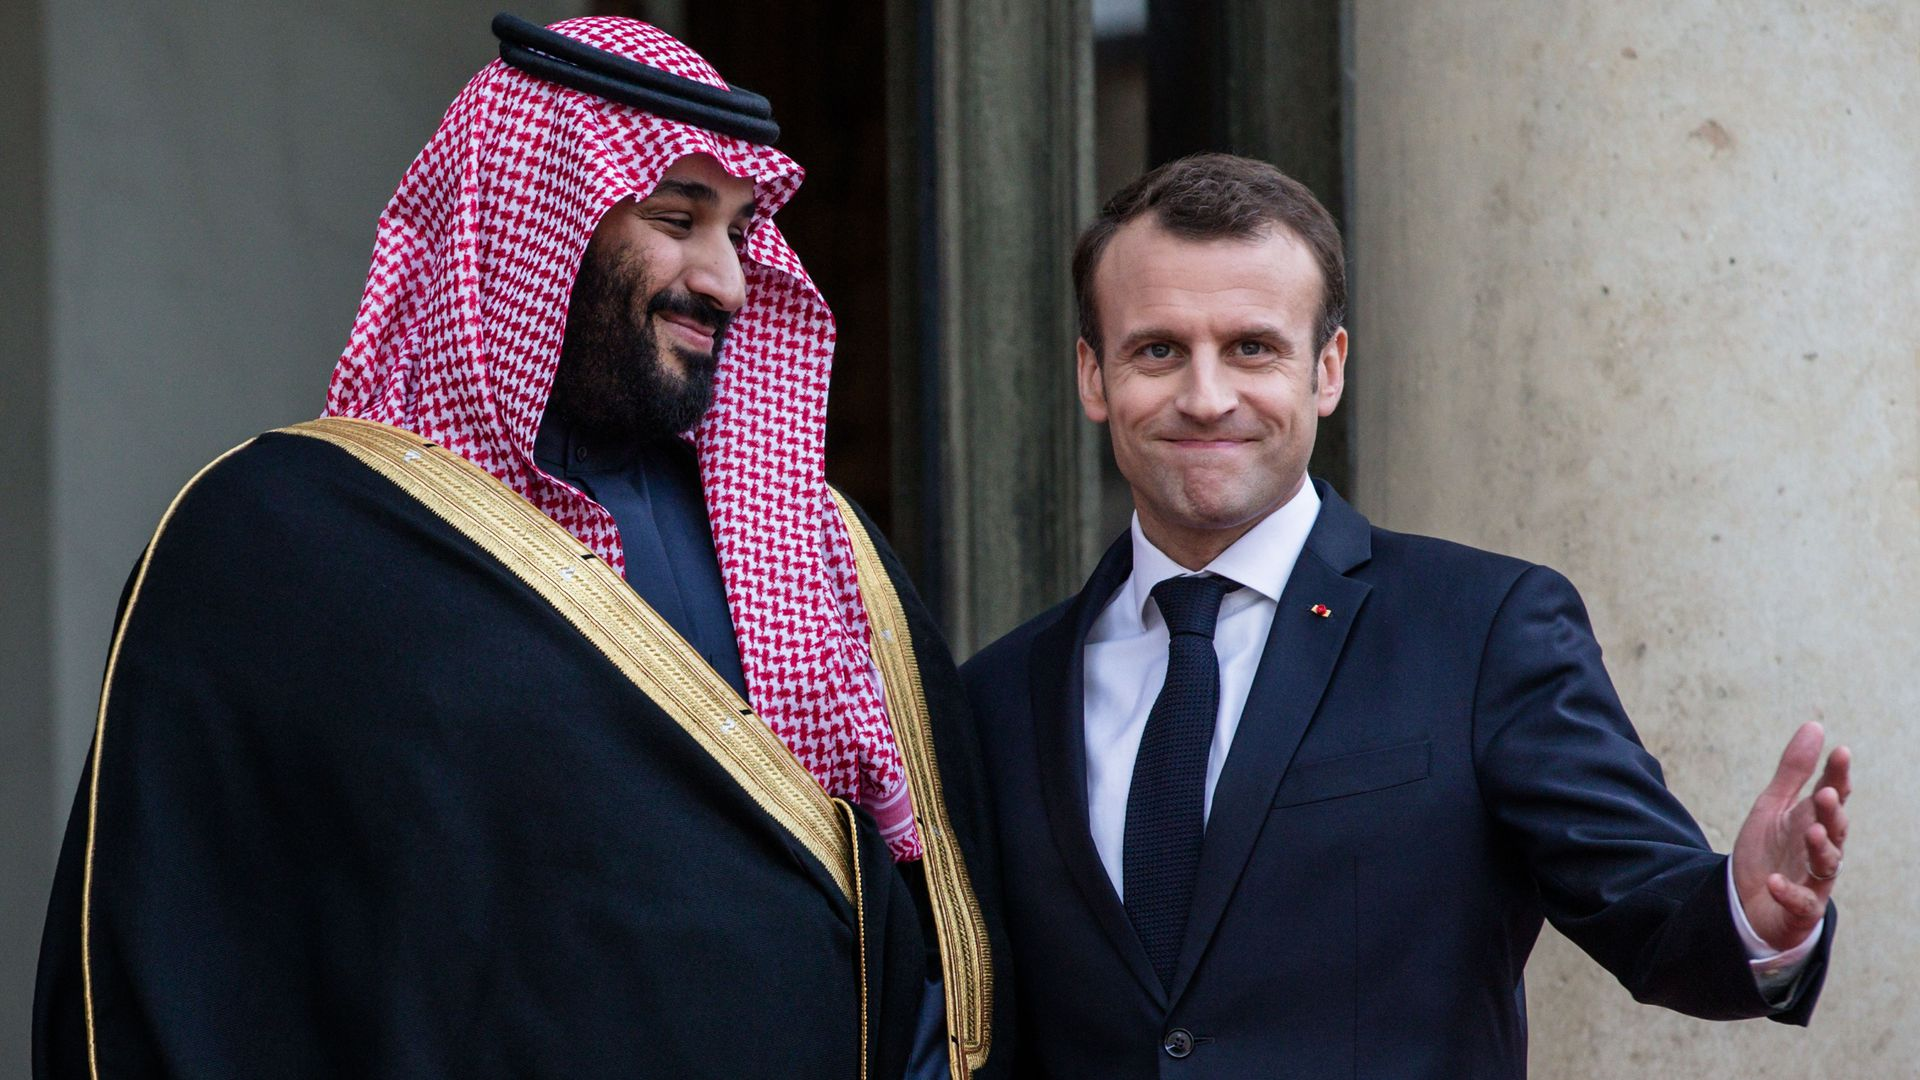 French President Emmanuel Macron welcomes the Crown Prince of Saudi Arabia Mohammed Bin Salman